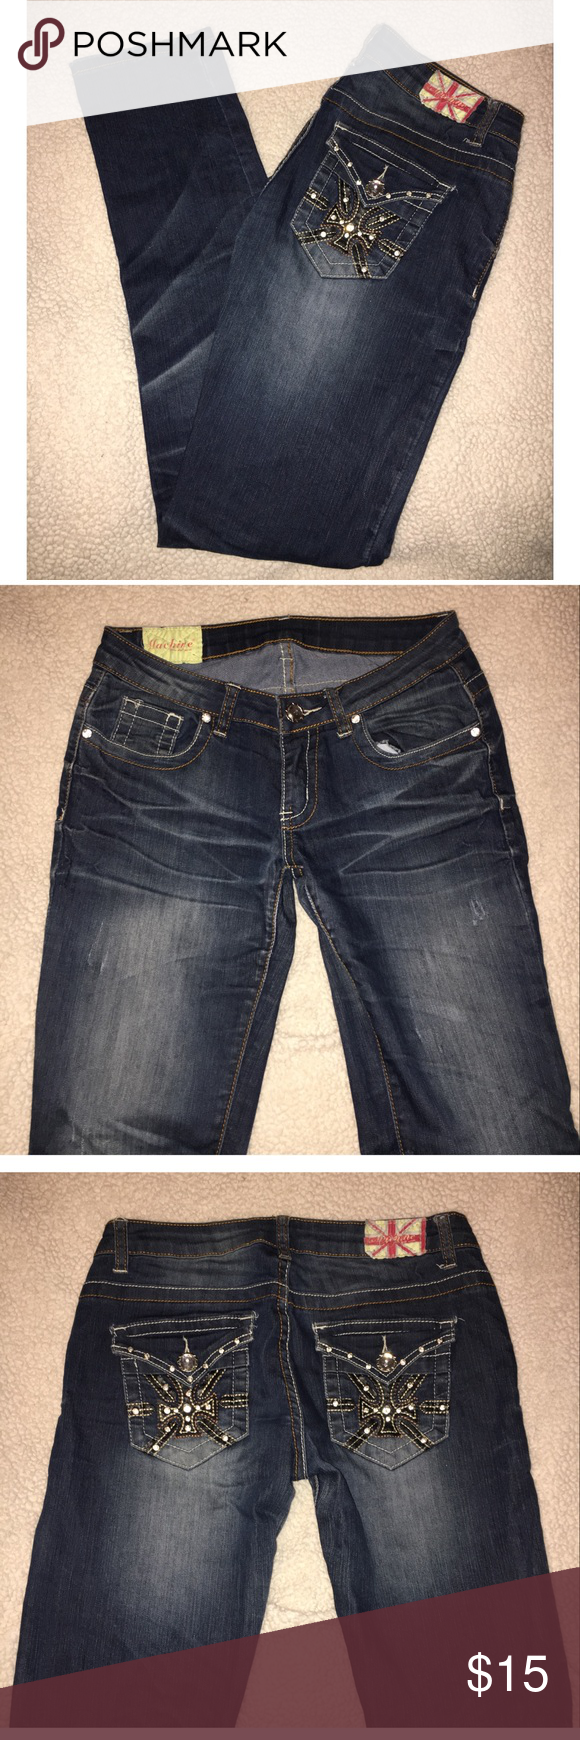 Juniors Skinny Jeans Bedazzled straight leg jeans. Very comfy and cute. Open to offers :) Pants Skinny